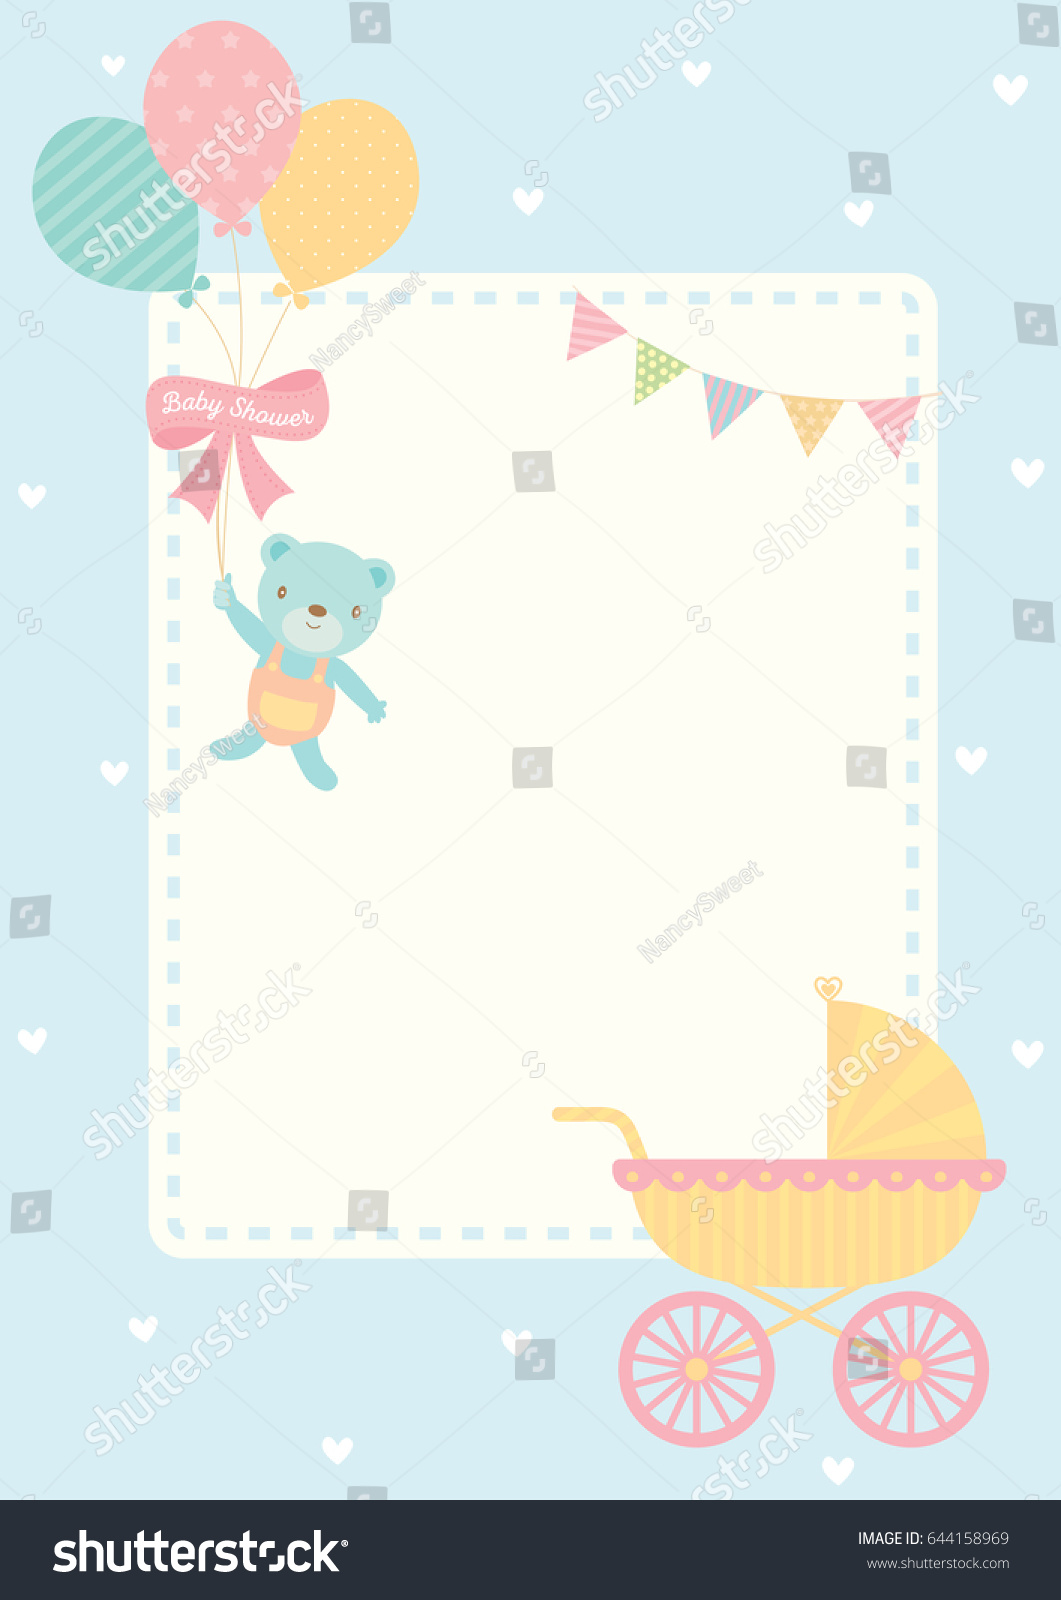 Cute baby shower greeting card new stock vector 644158969 cute baby shower greeting card for new born decorated with baby carriage and bear doll hold kristyandbryce Image collections